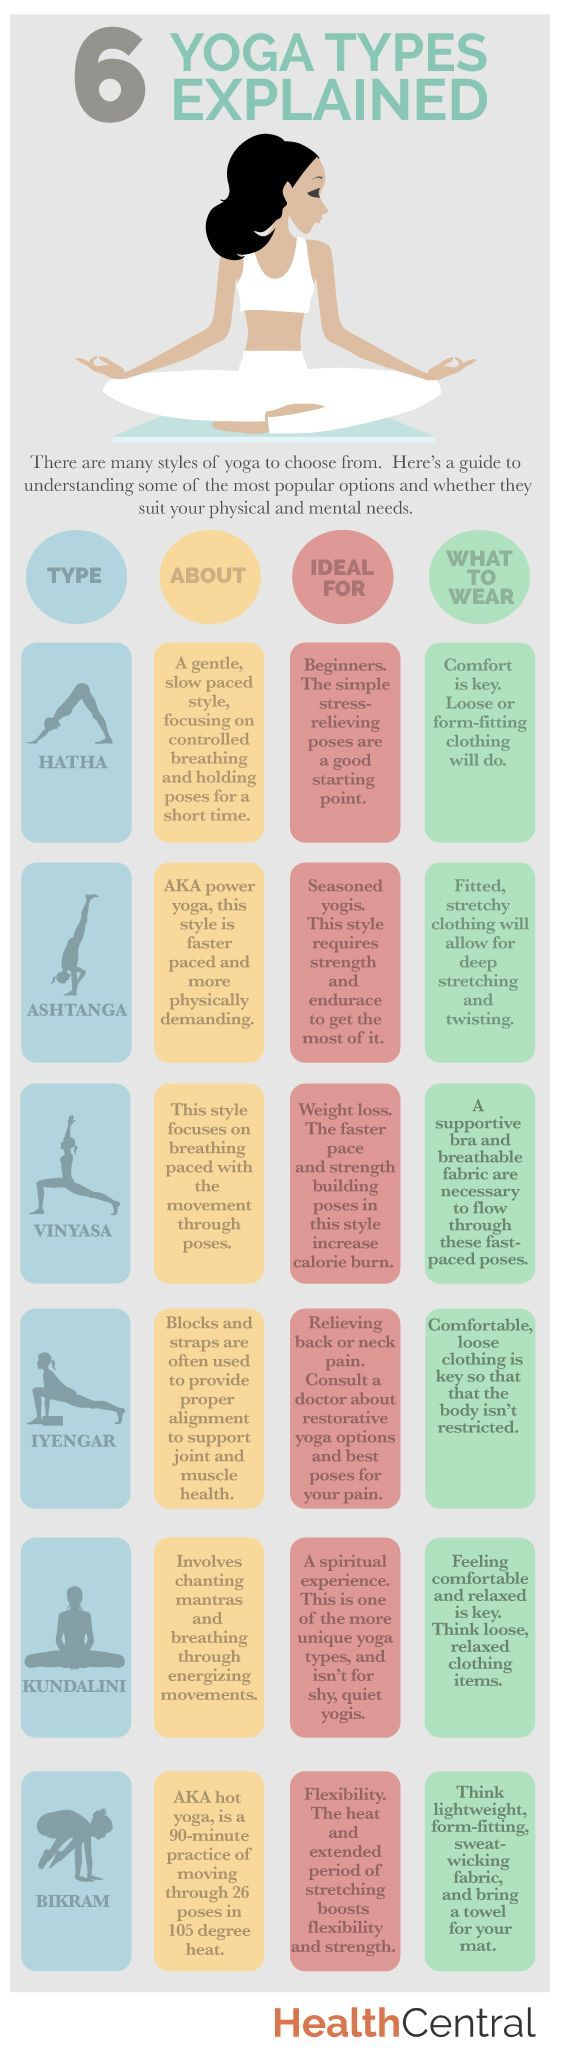 6 #yoga types explained. Which should you practice and what should you wear to be most comfortable? #yogi #bikram http://www.healthcentral.com/diet-exercise/c/458275/179088/explained-infographic/?ap=2012